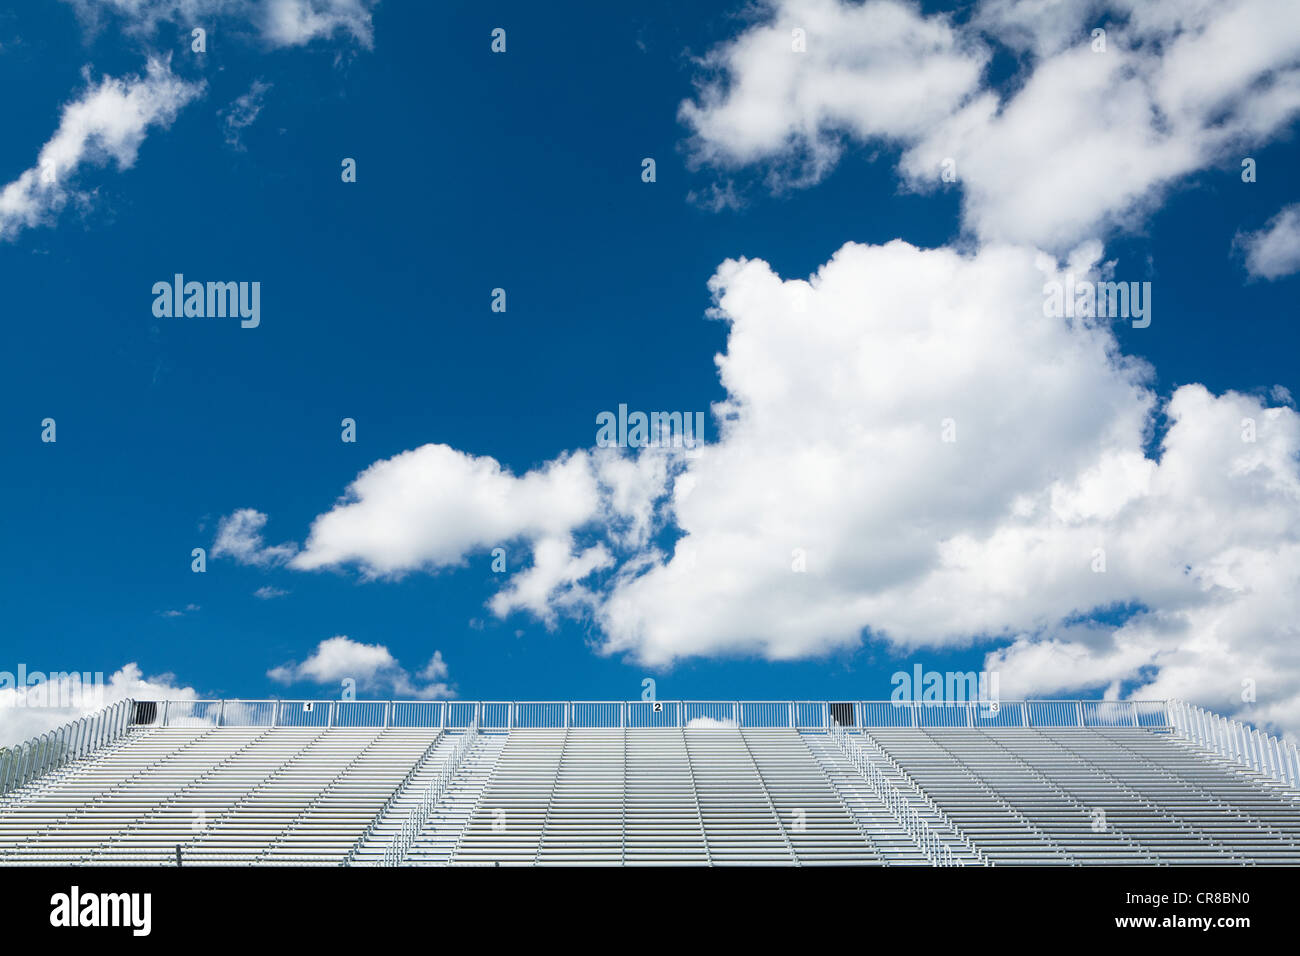 Blue sky and clouds above empty stadium seats - Stock Image